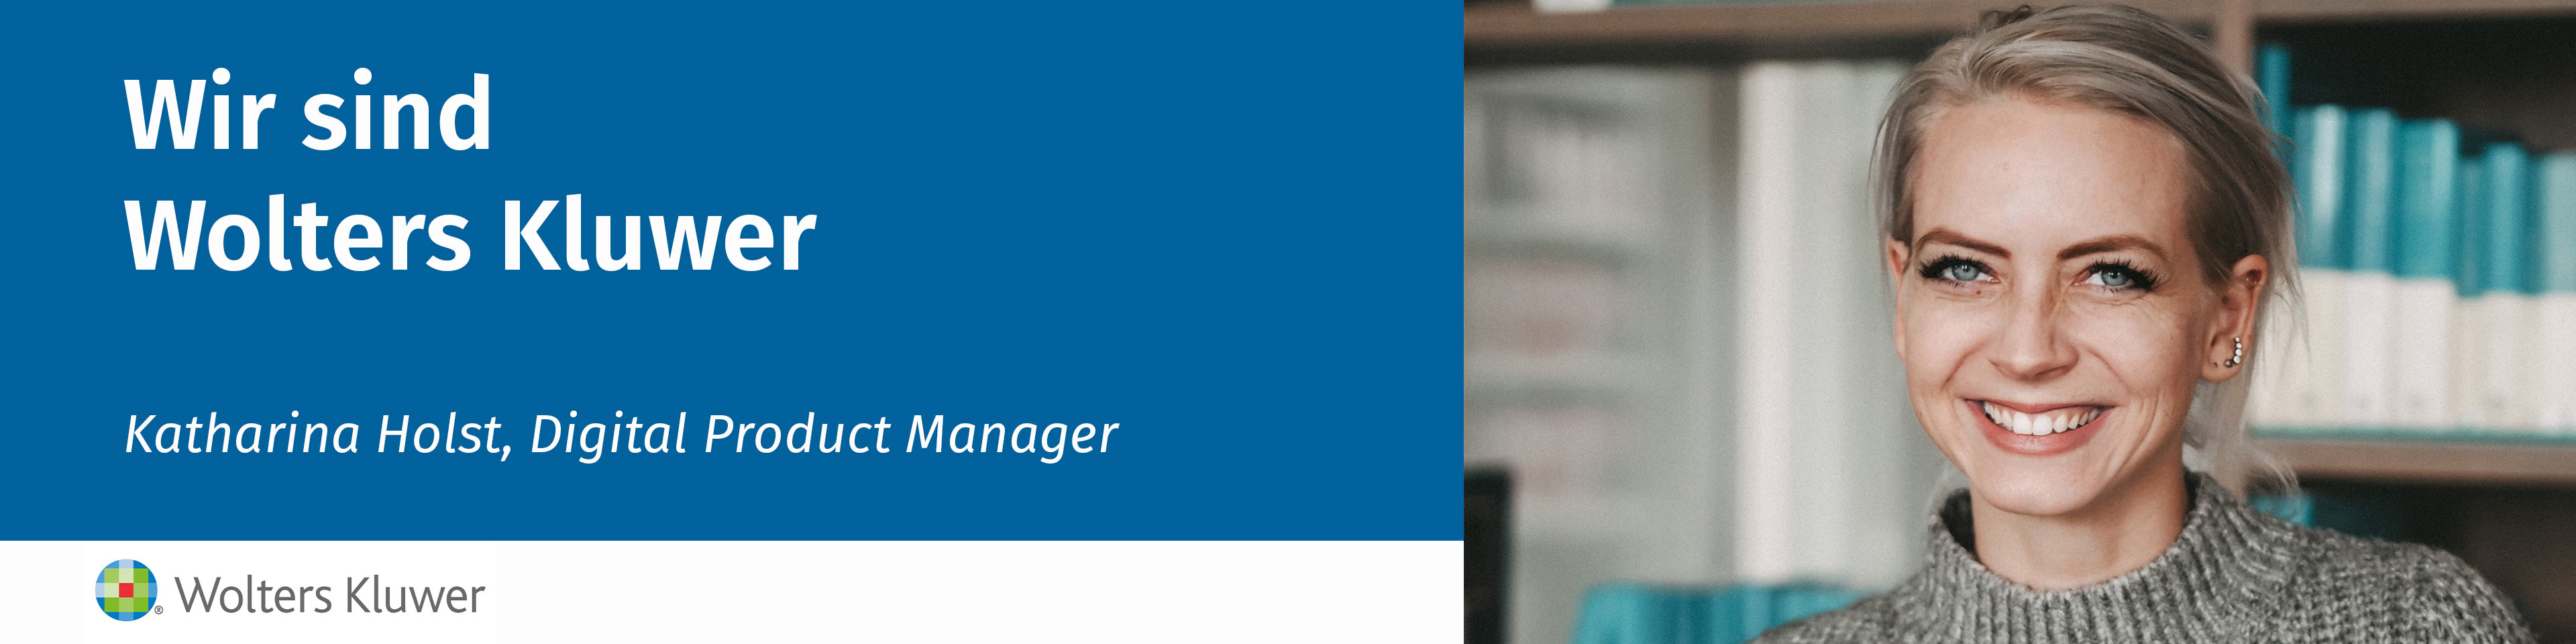 Wir sind Wolters Kluwer Digital Product Manager Katharina Holst